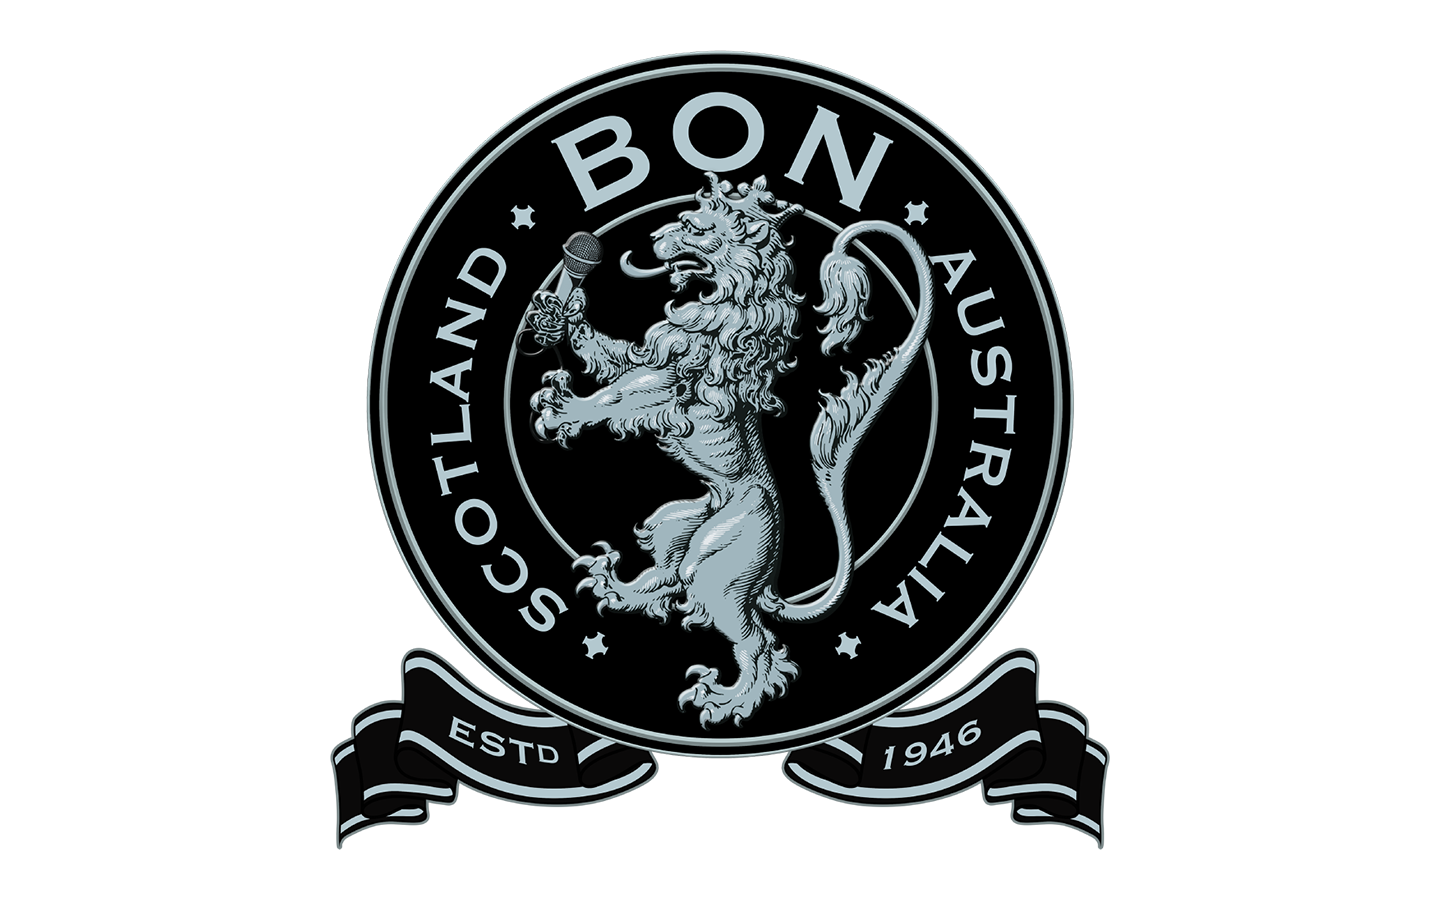 NME: Family of AC/DC's Bon Scott launch fan site on late singer's 75th birthday